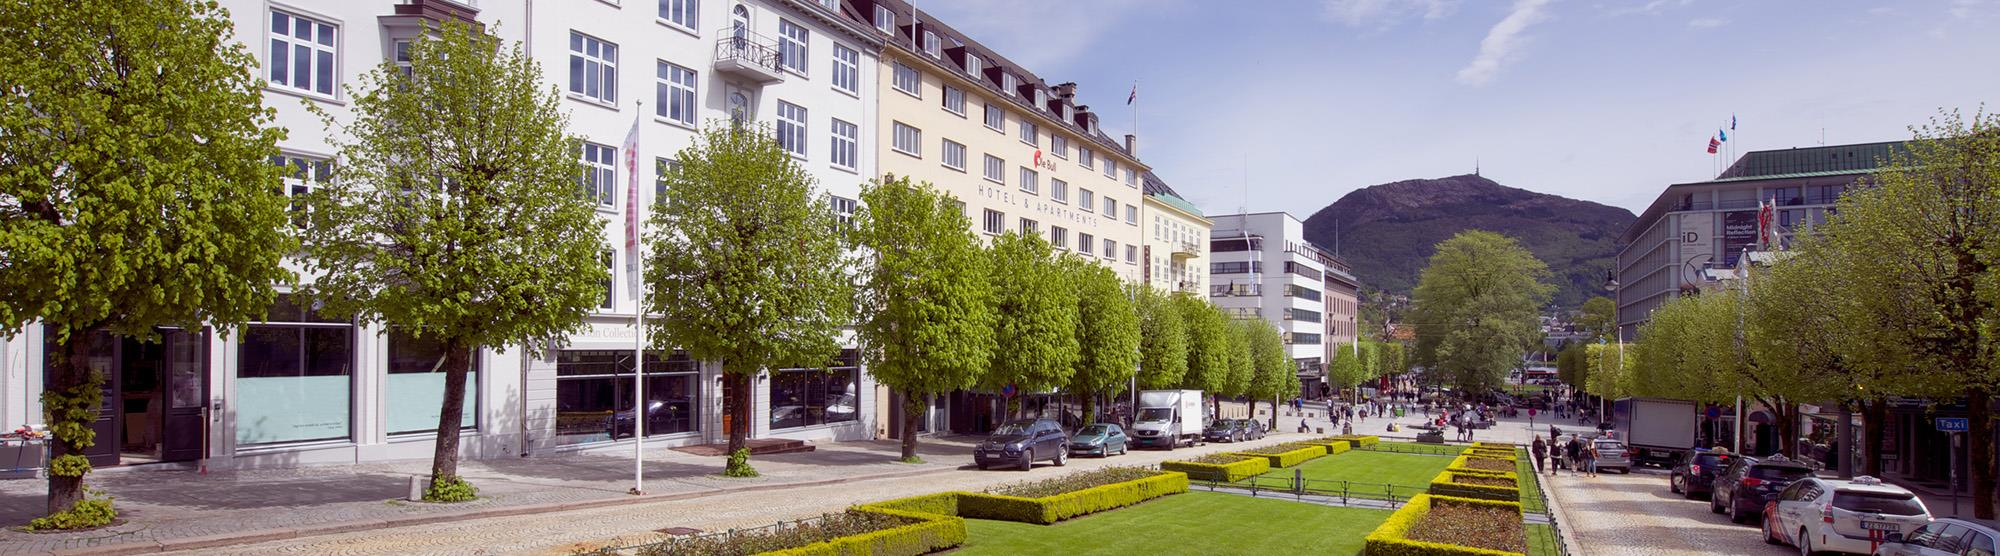 Hotels in Bergen city center